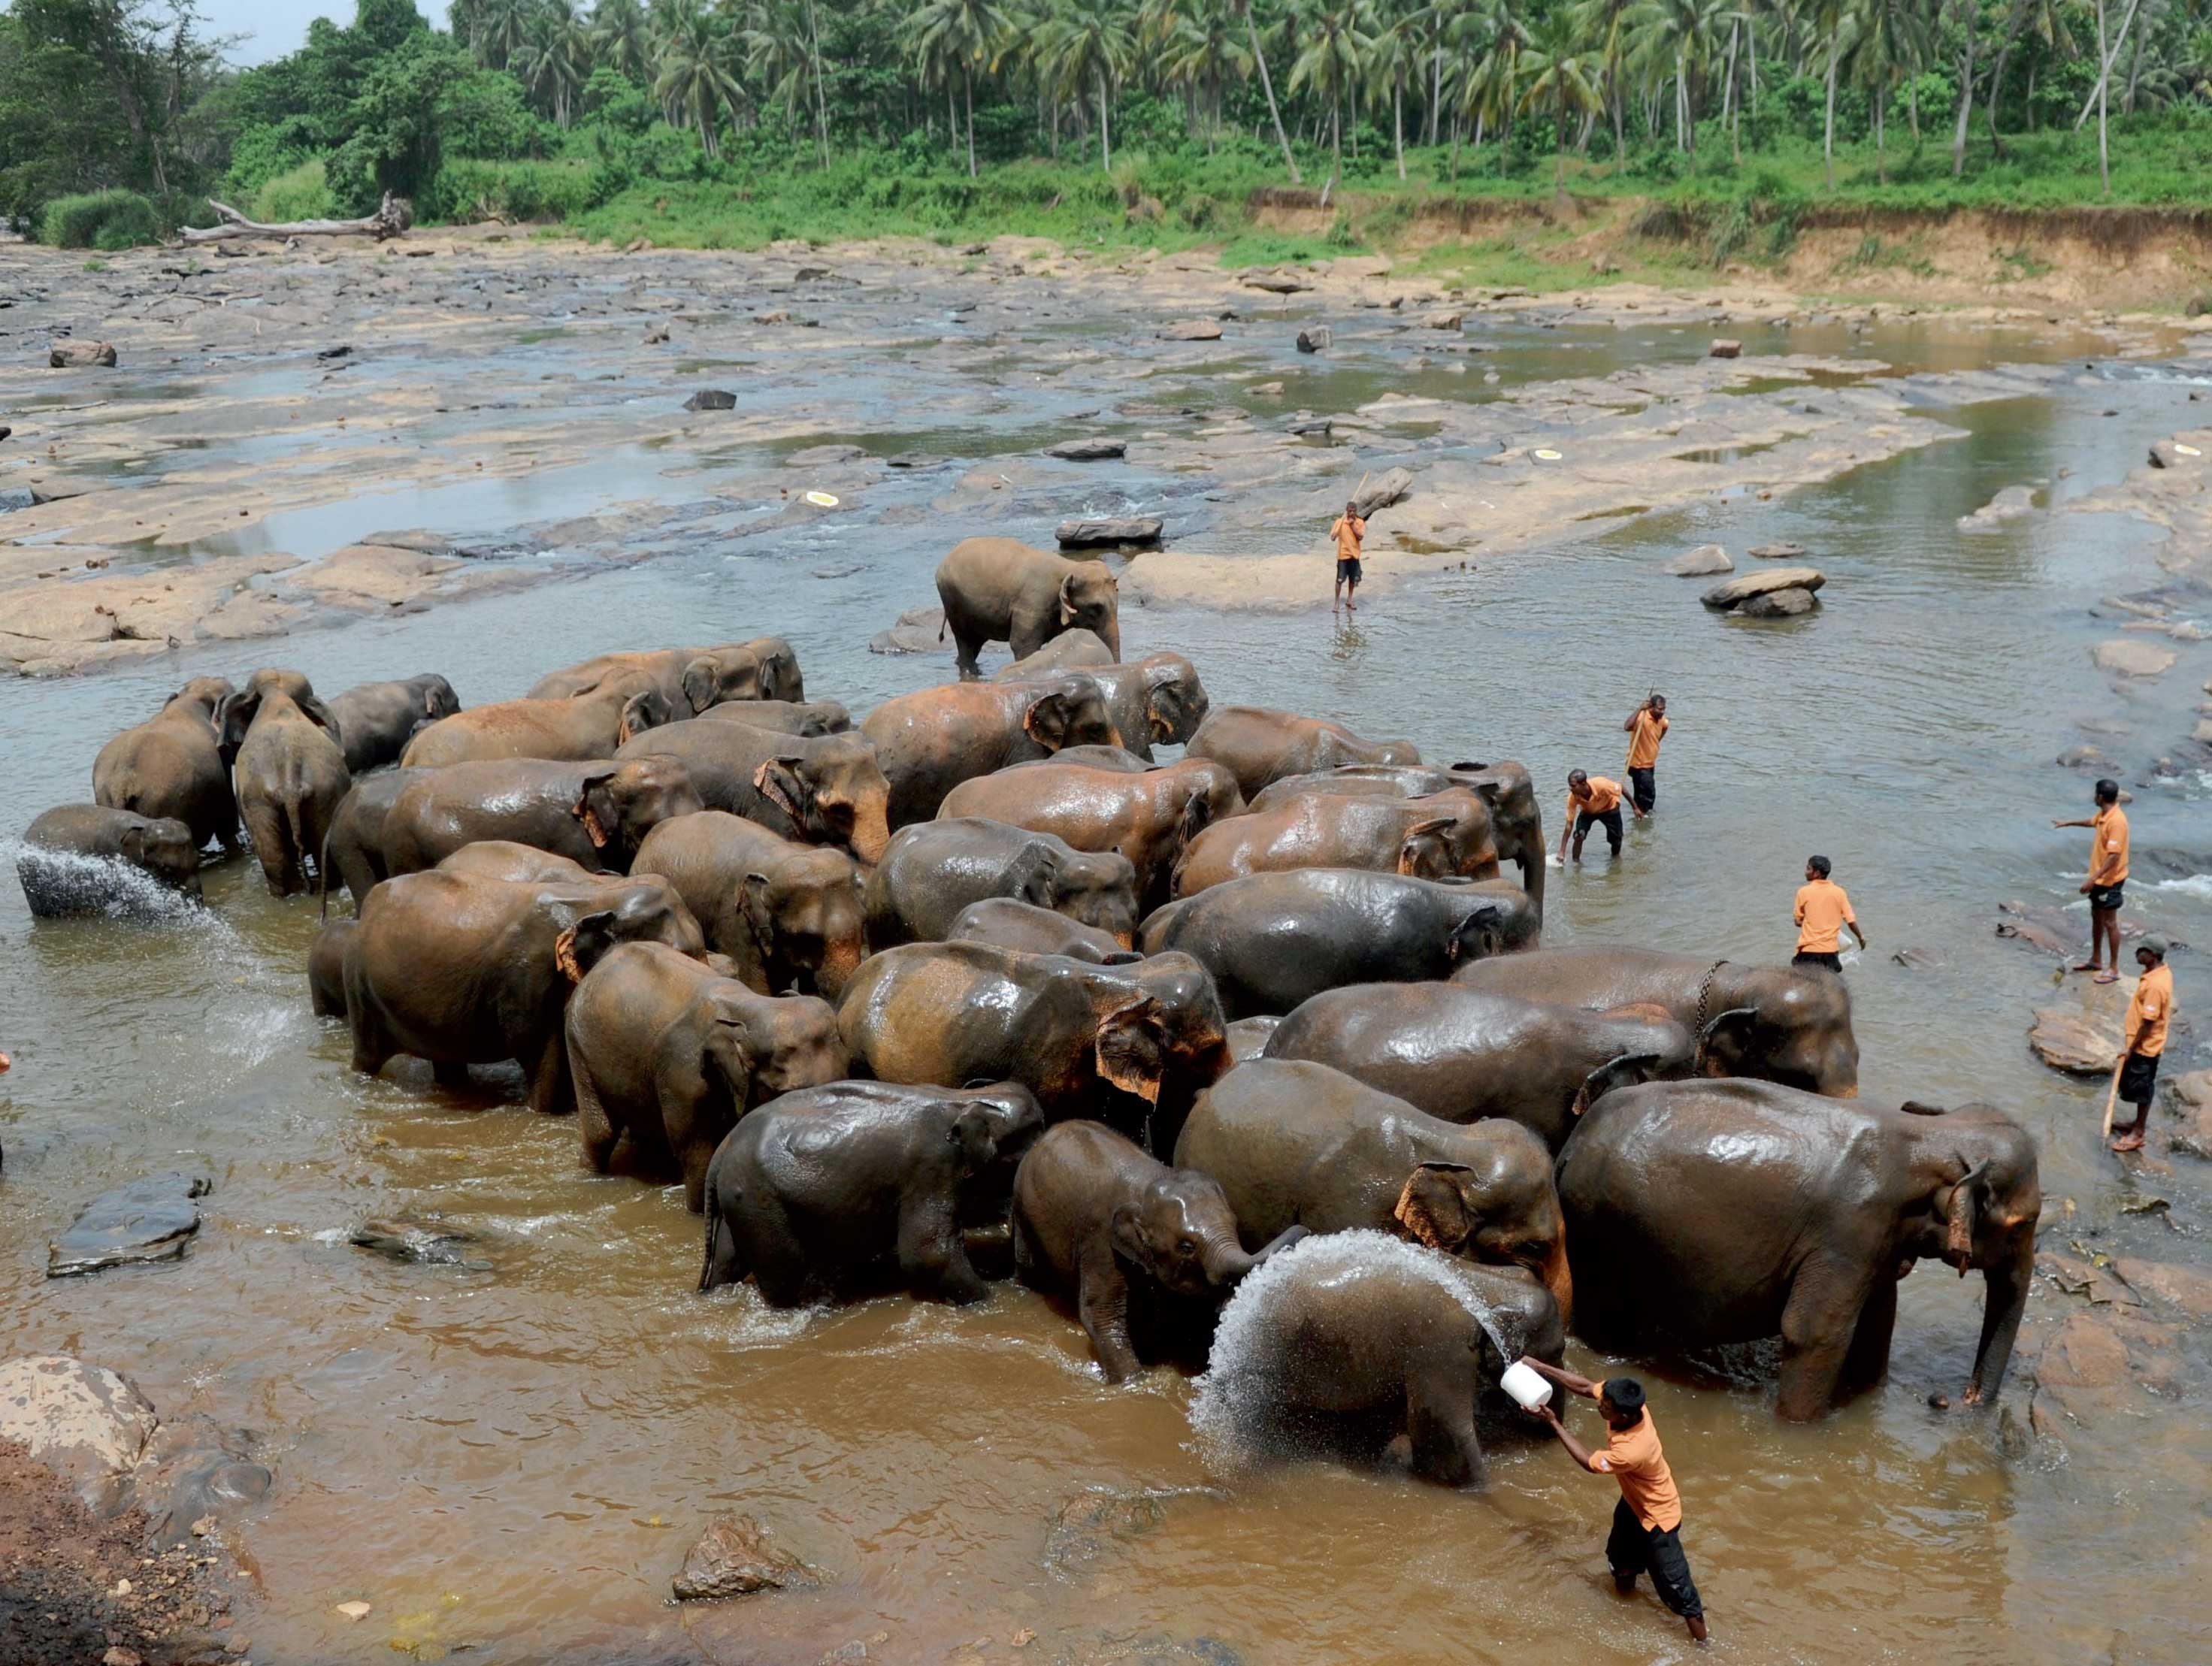 Go on, put Sri Lanka's elephant orphanage on your bucket list